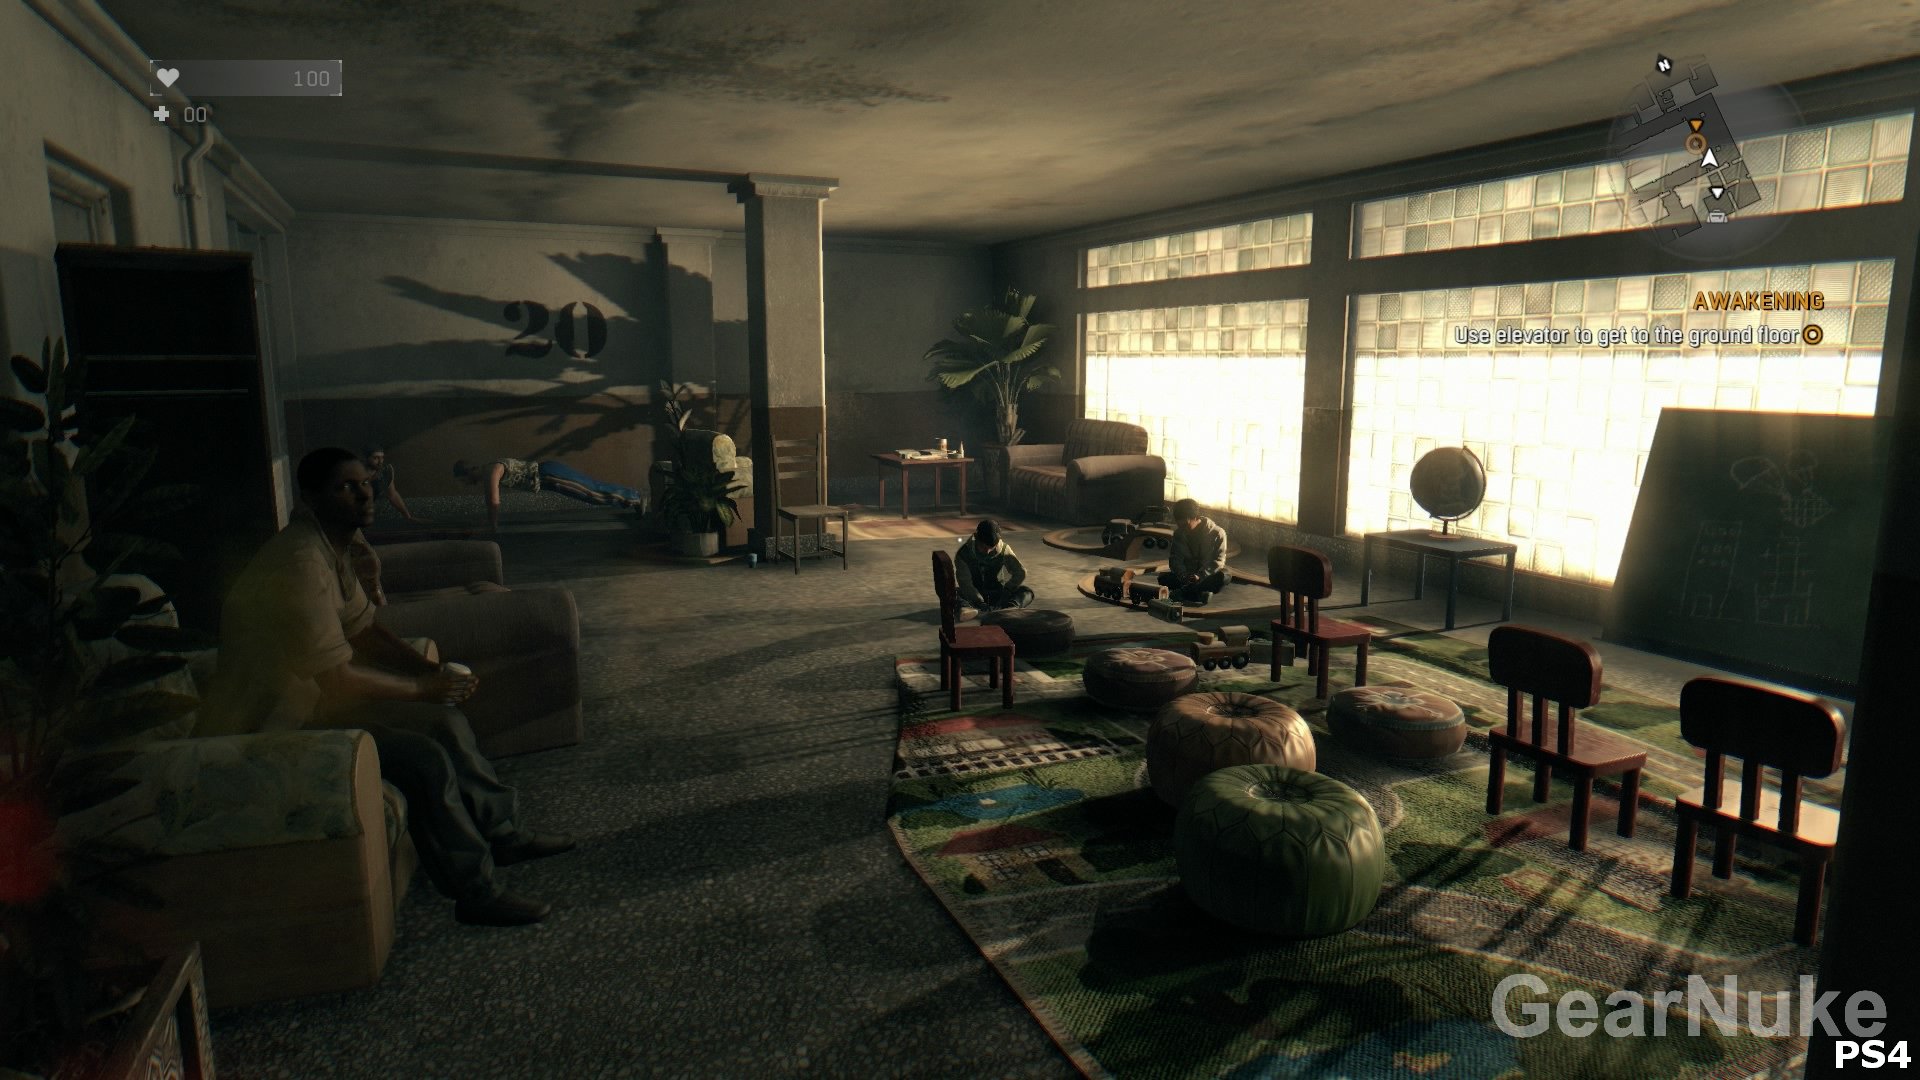 Dying Light PC HighLow vs PS4 Screenshot parison PS4 Holds